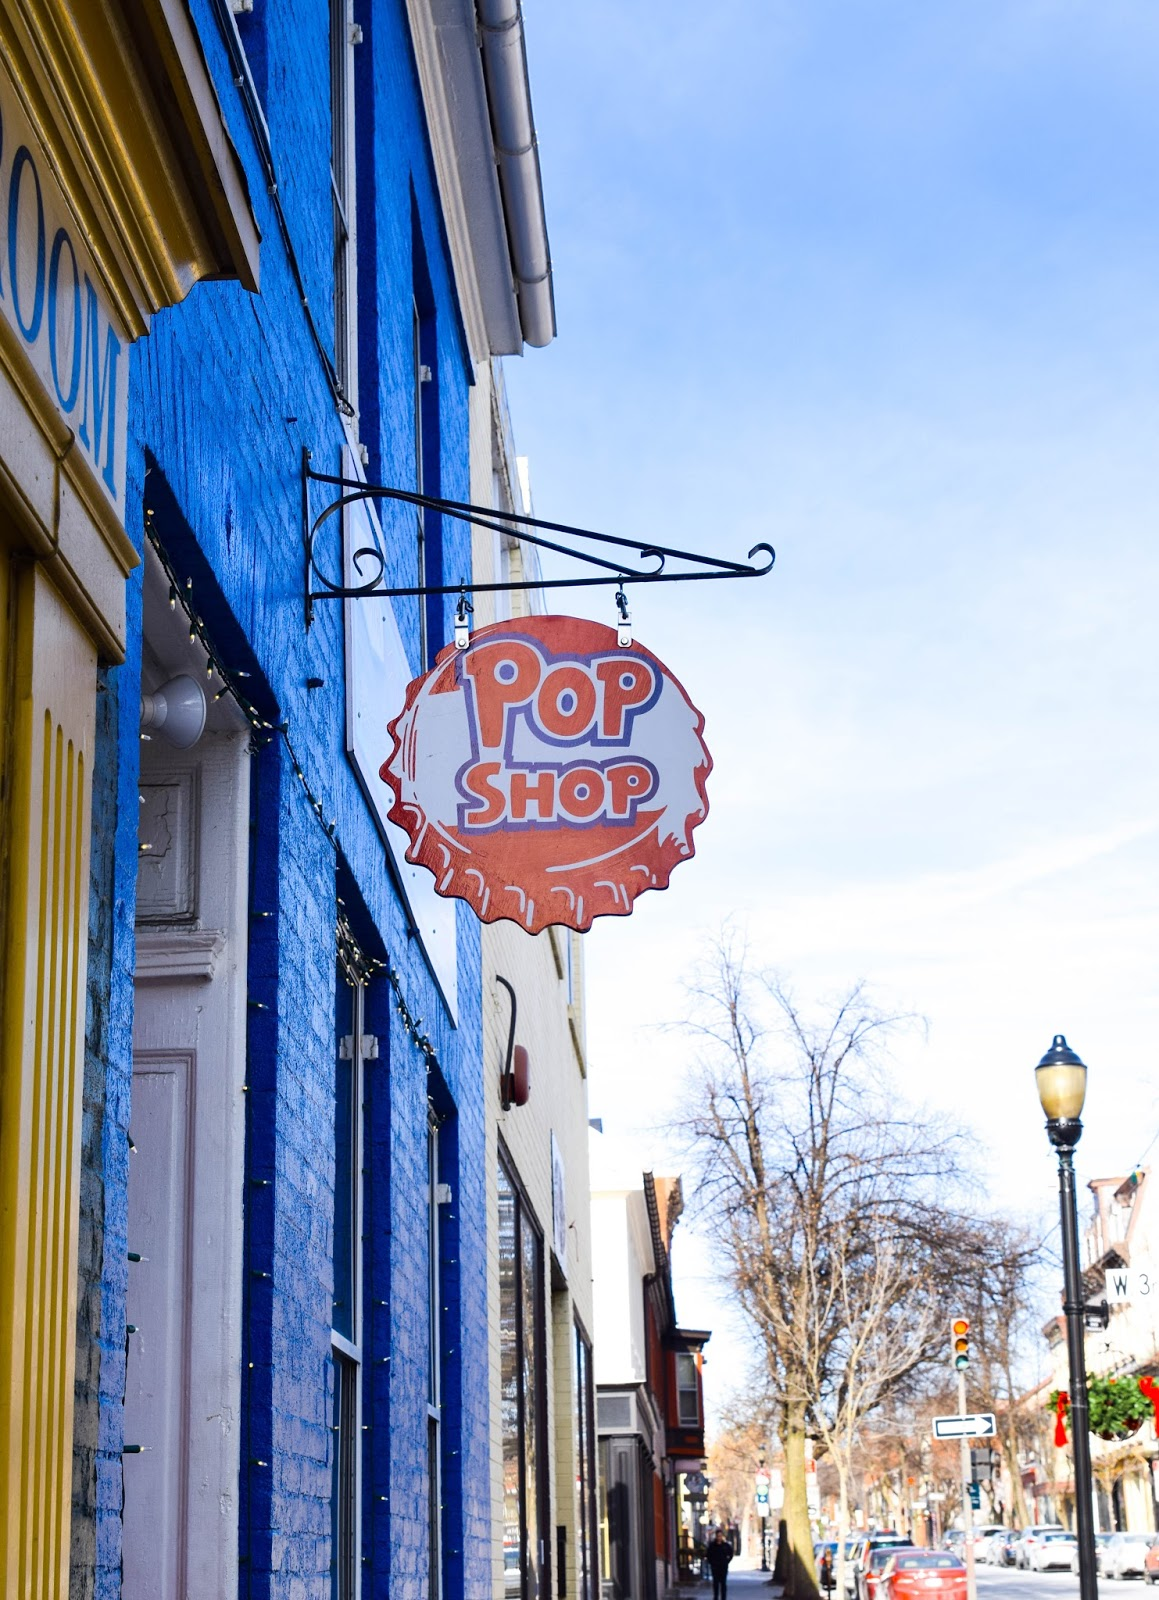 frederick maryland travel guide pop shop - visit frederick - downtown historic frederick